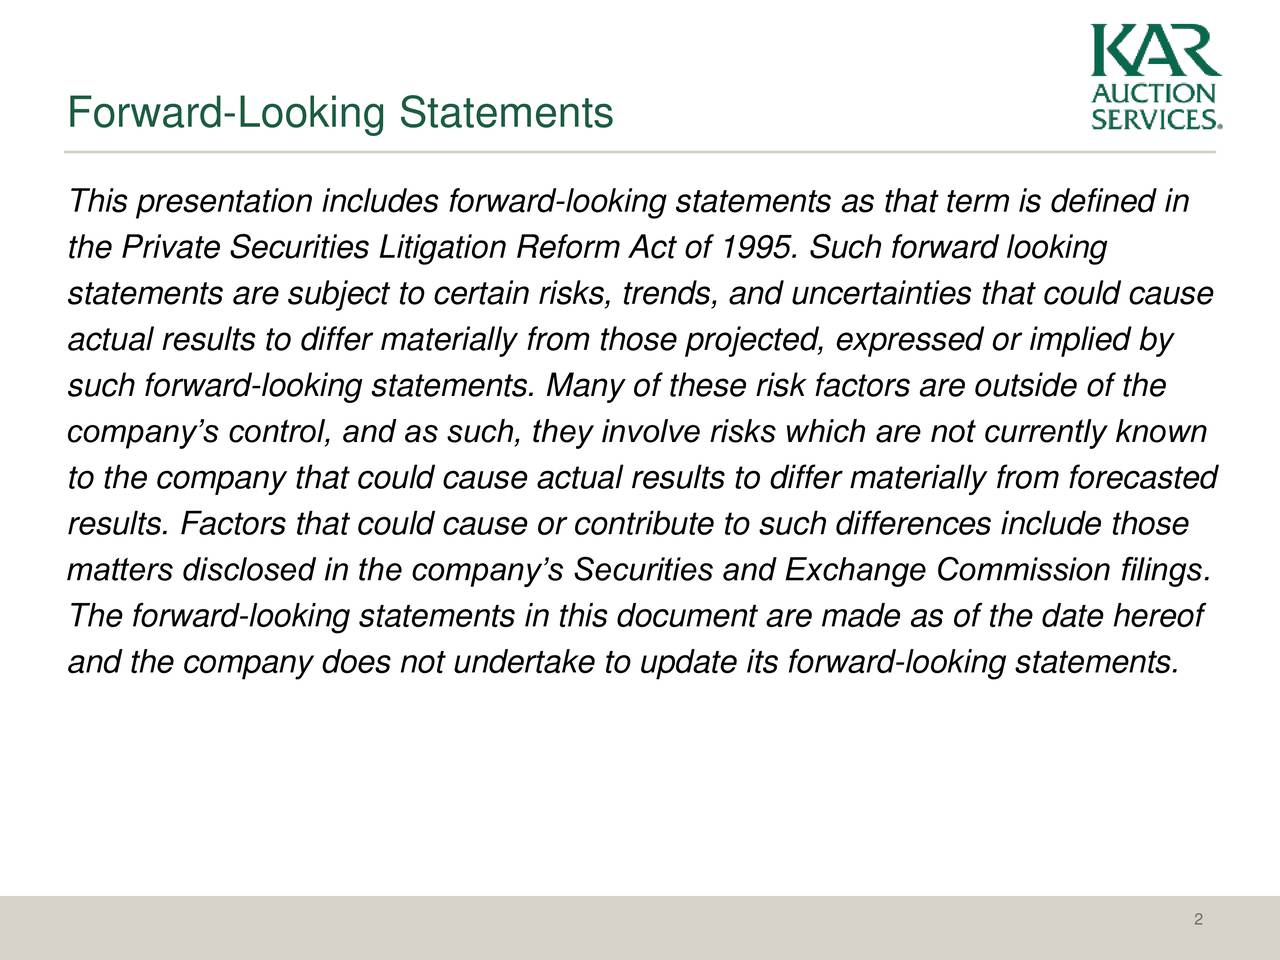 This presentation includes forward-looking statements as that term is defined in the Private Securities Litigation Reform Act of 1995. Such forward looking statements are subject to certain risks, trends, and uncertainties that could cause actual results to differ materially from those projected, expressed or implied by such forward-looking statements. Many of these risk factors are outside of the companys control, and as such, they involve risks which are not currently known to the company that could cause actual results to differ materially from forecasted results. Factors that could cause or contribute to such differences include those matters disclosed in the companys Securities and Exchange Commission filings. The forward-looking statements in this document are made as of the date hereof and the company does not undertake to update its forward-looking statements. 2